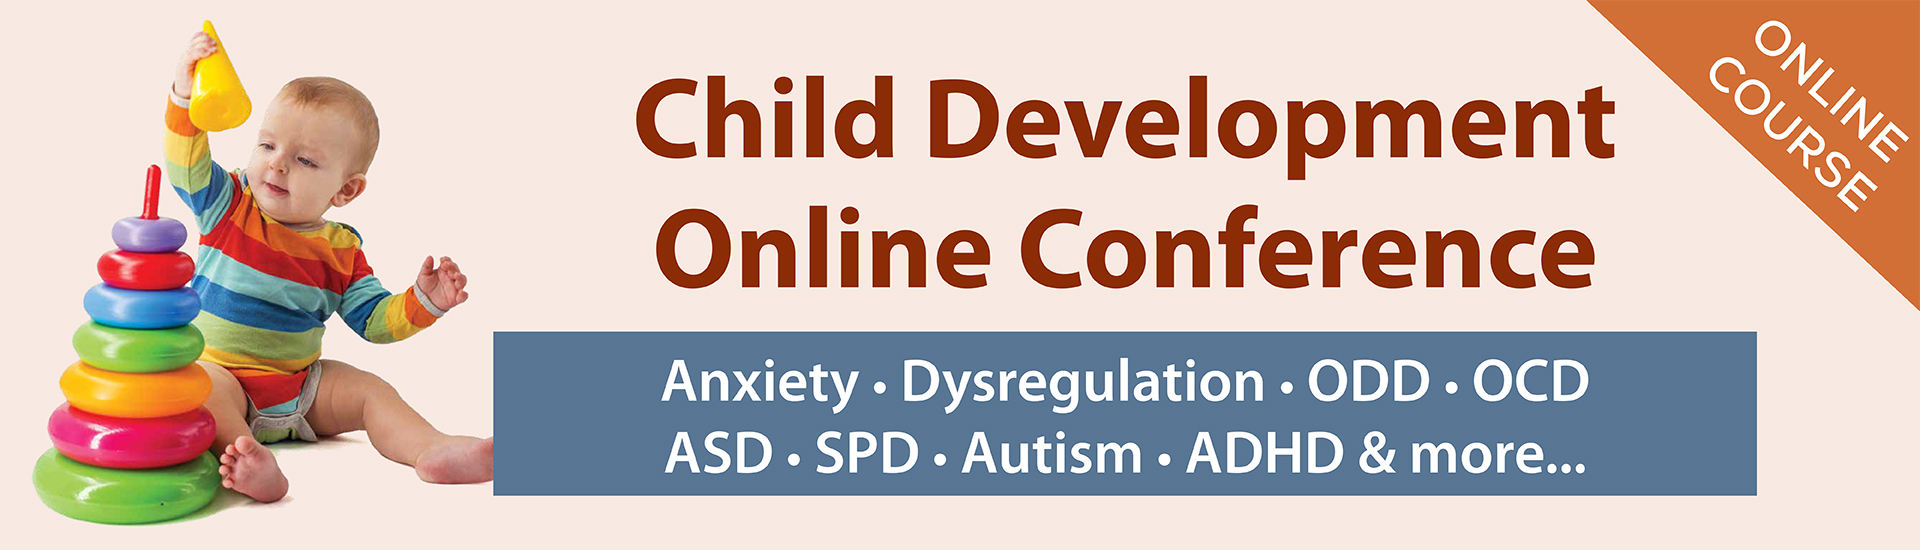 Child Development Online Conference